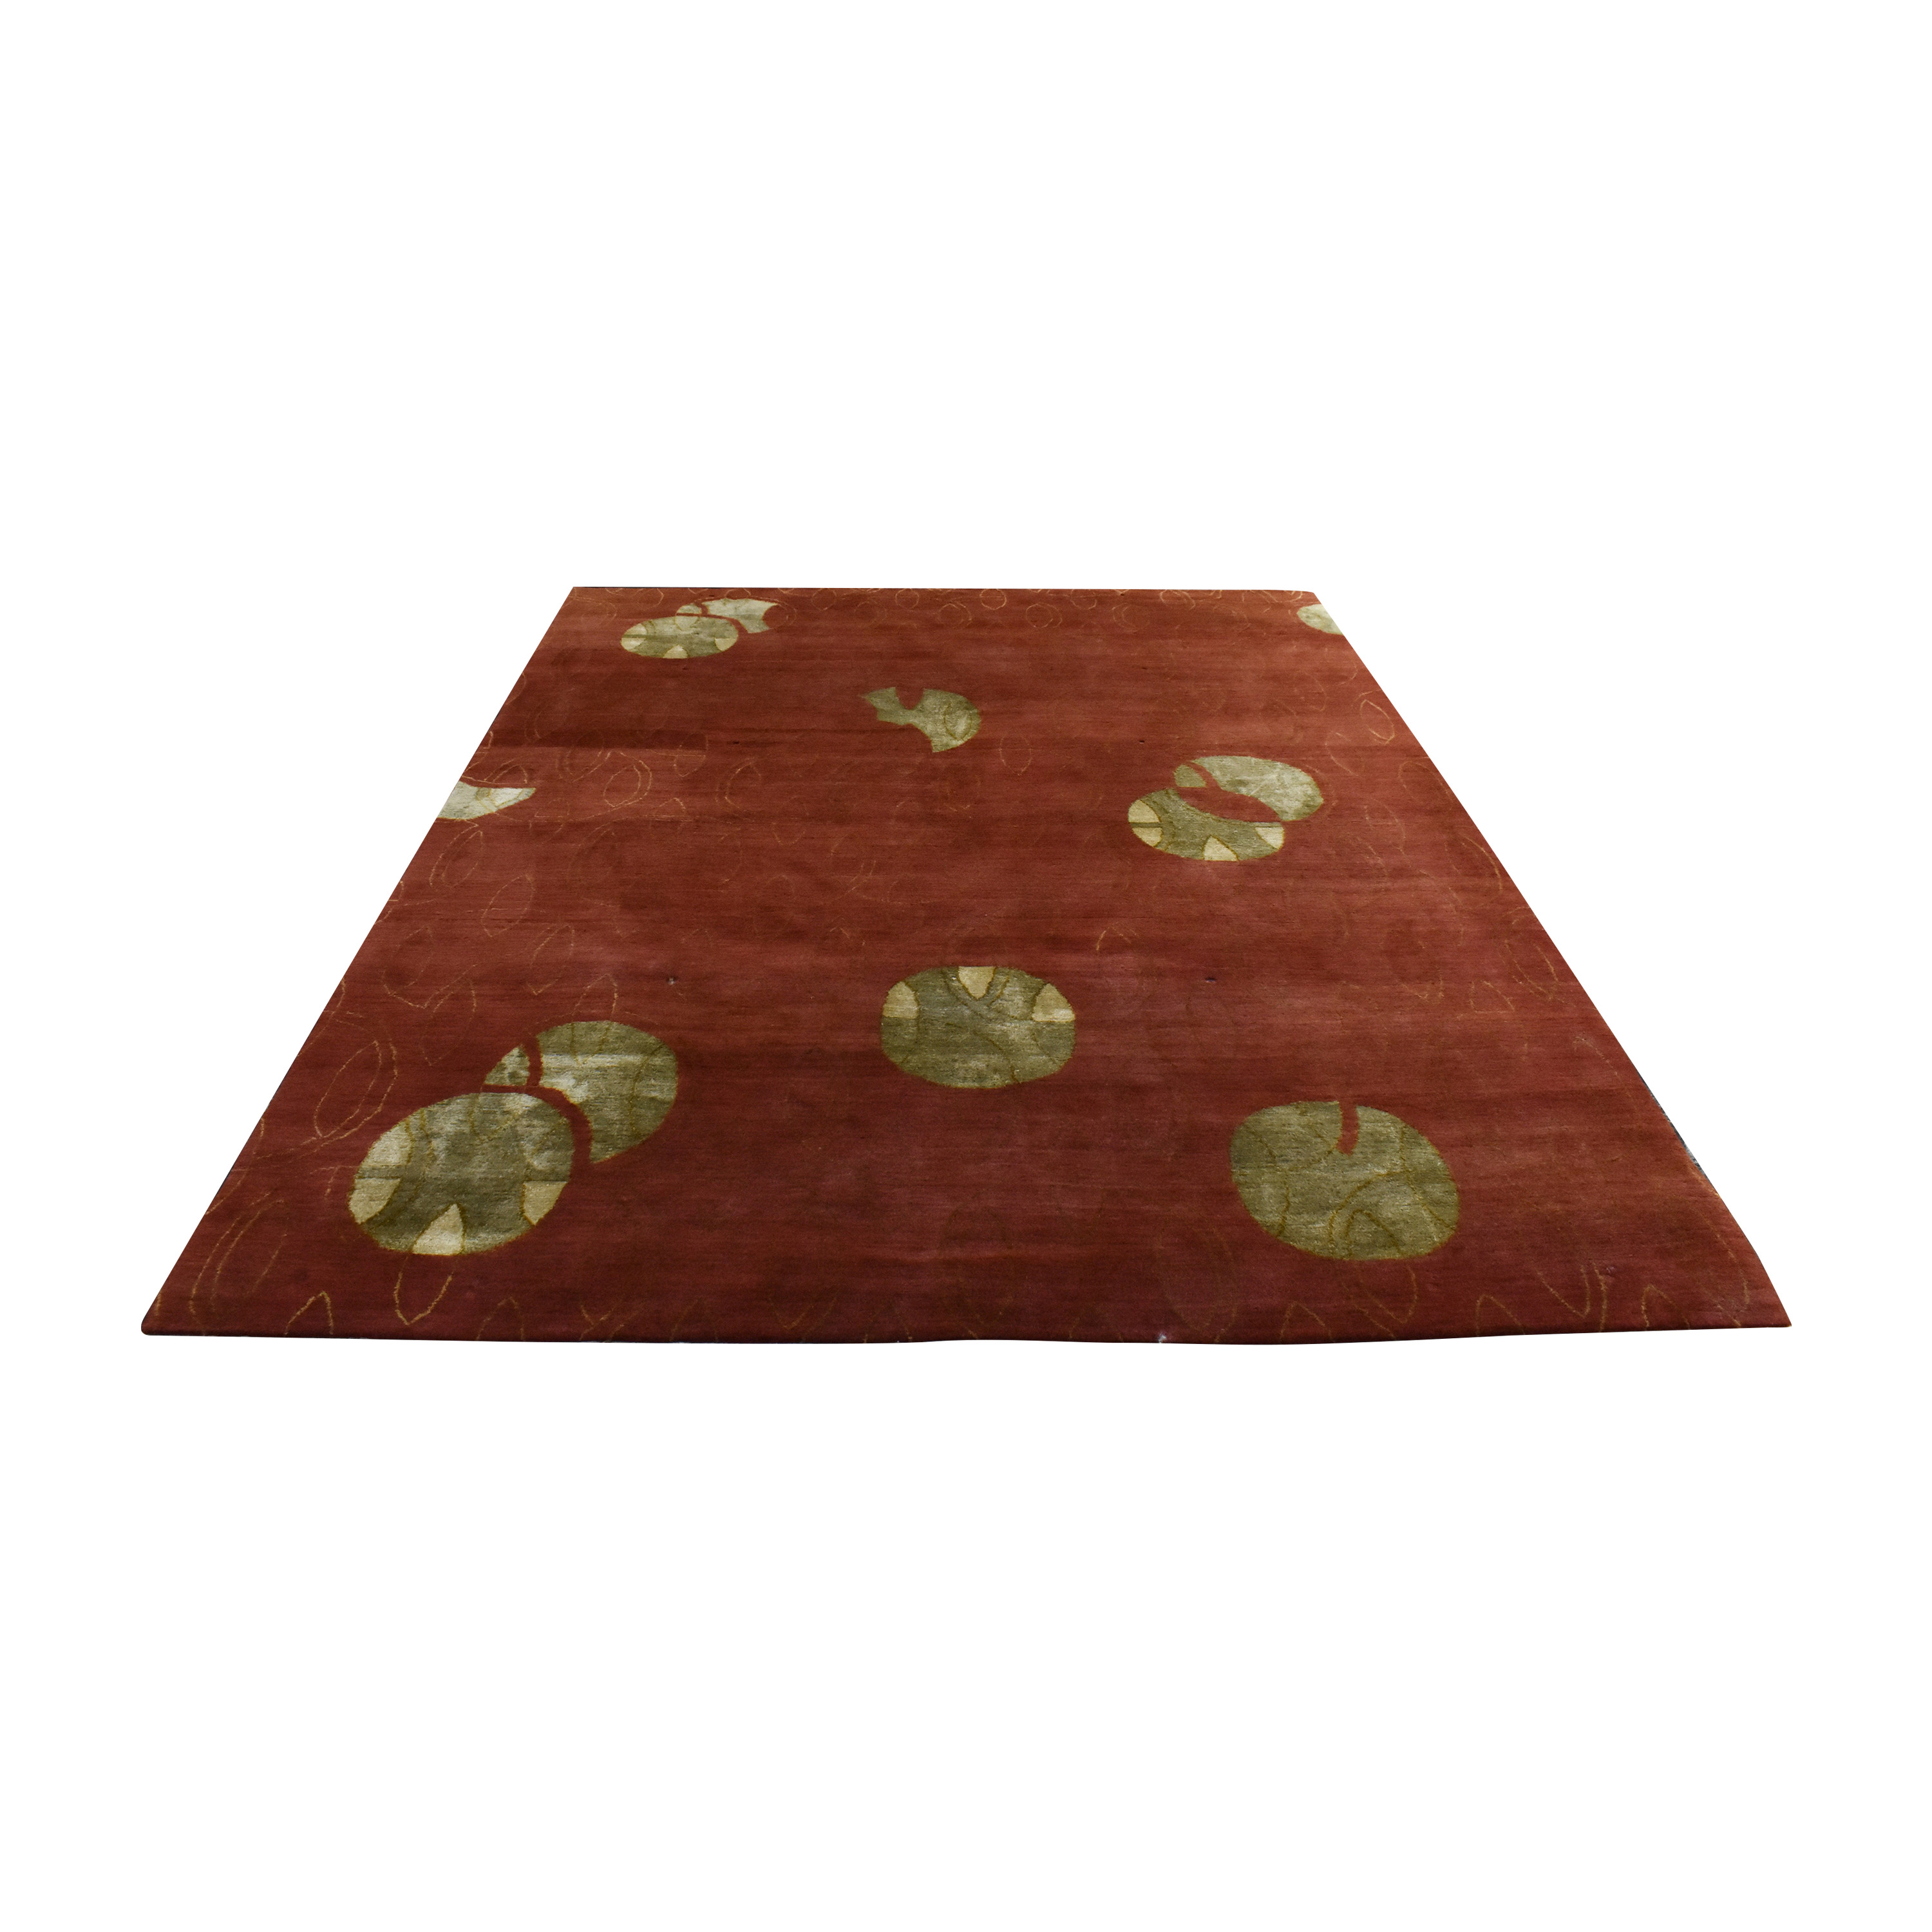 buy Custom Patterned Area Rug  Decor